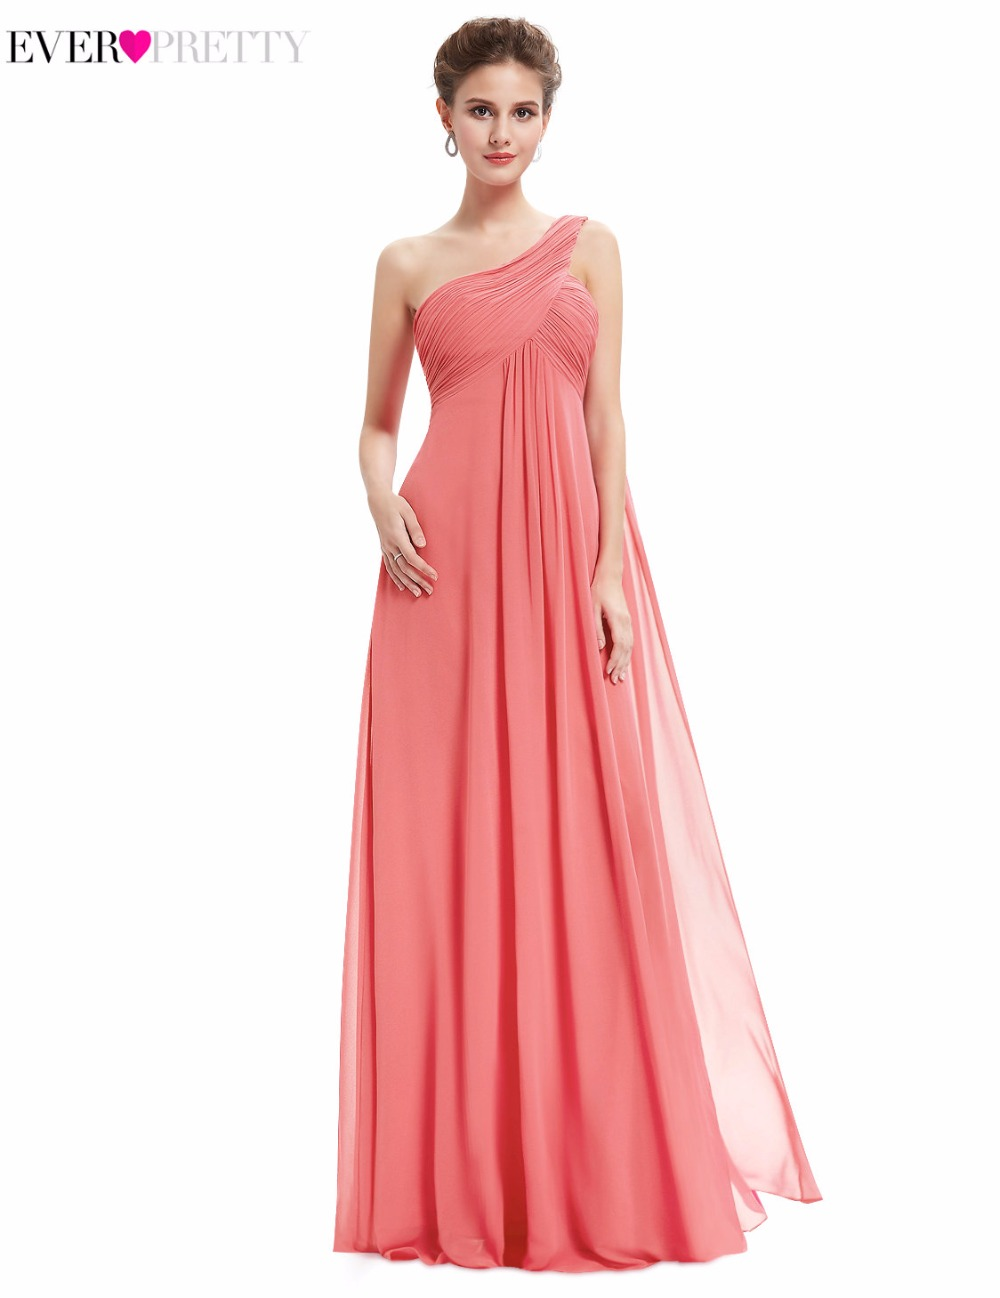 Clearance Sale] Party Dresses Ever Pretty HE08369 Women Trailing ...